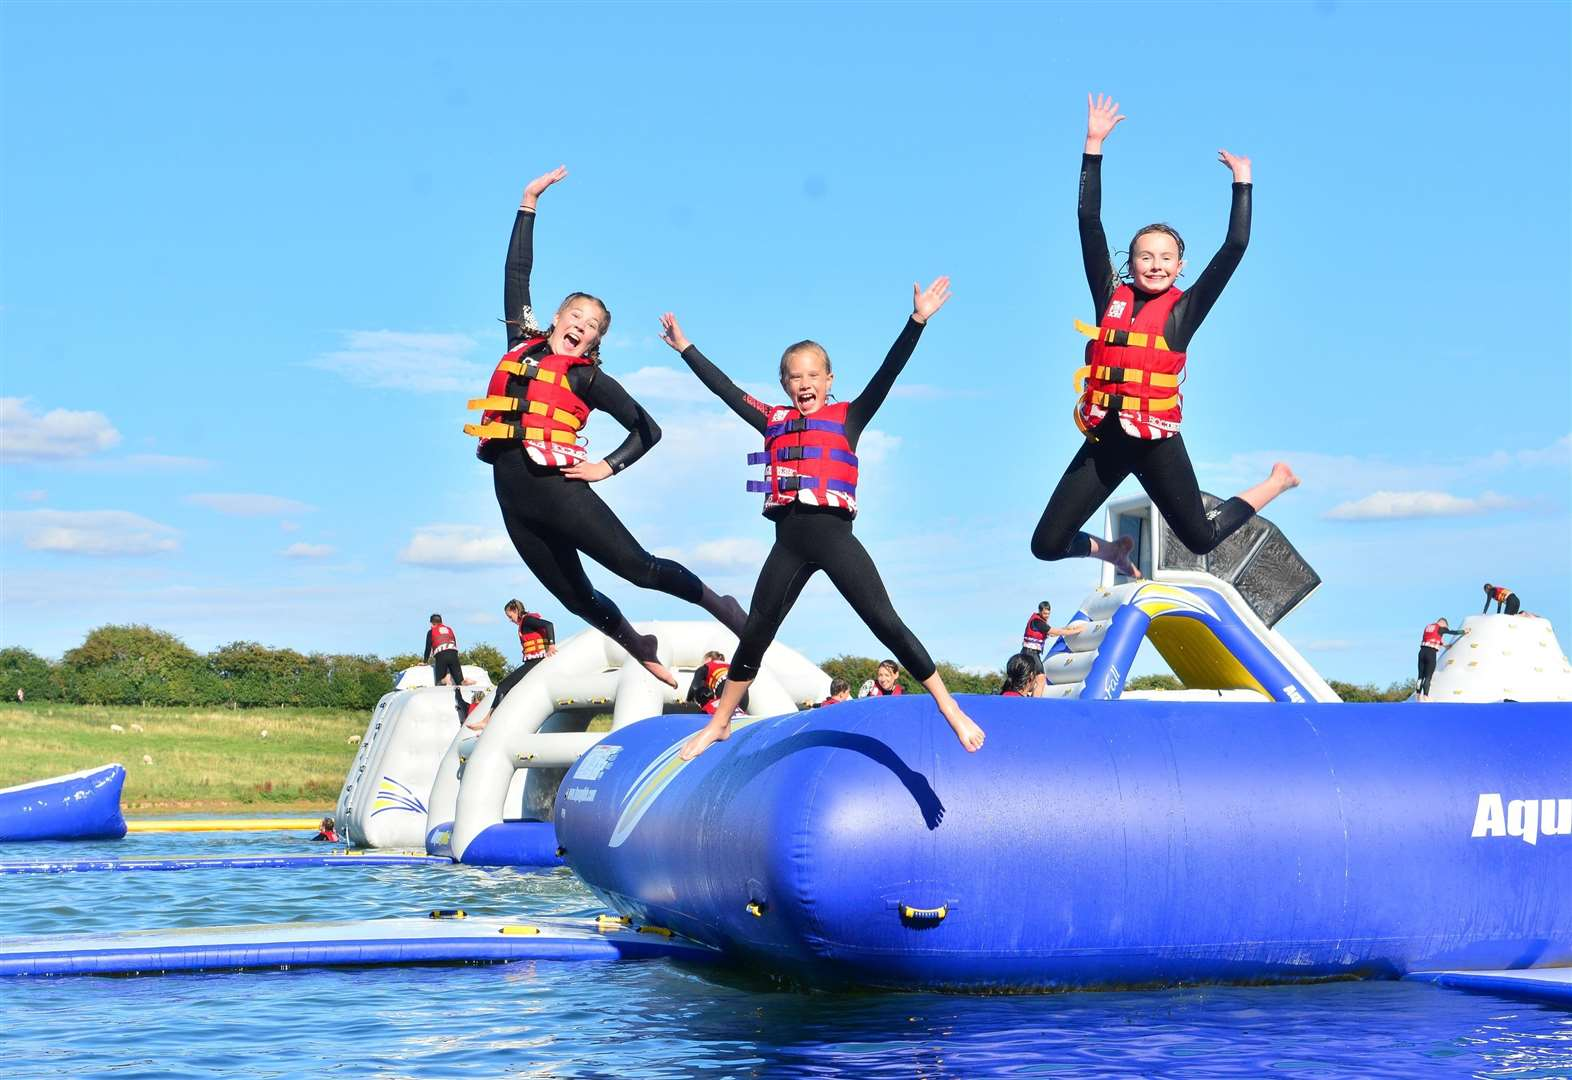 Sessions for children at Aqua Park